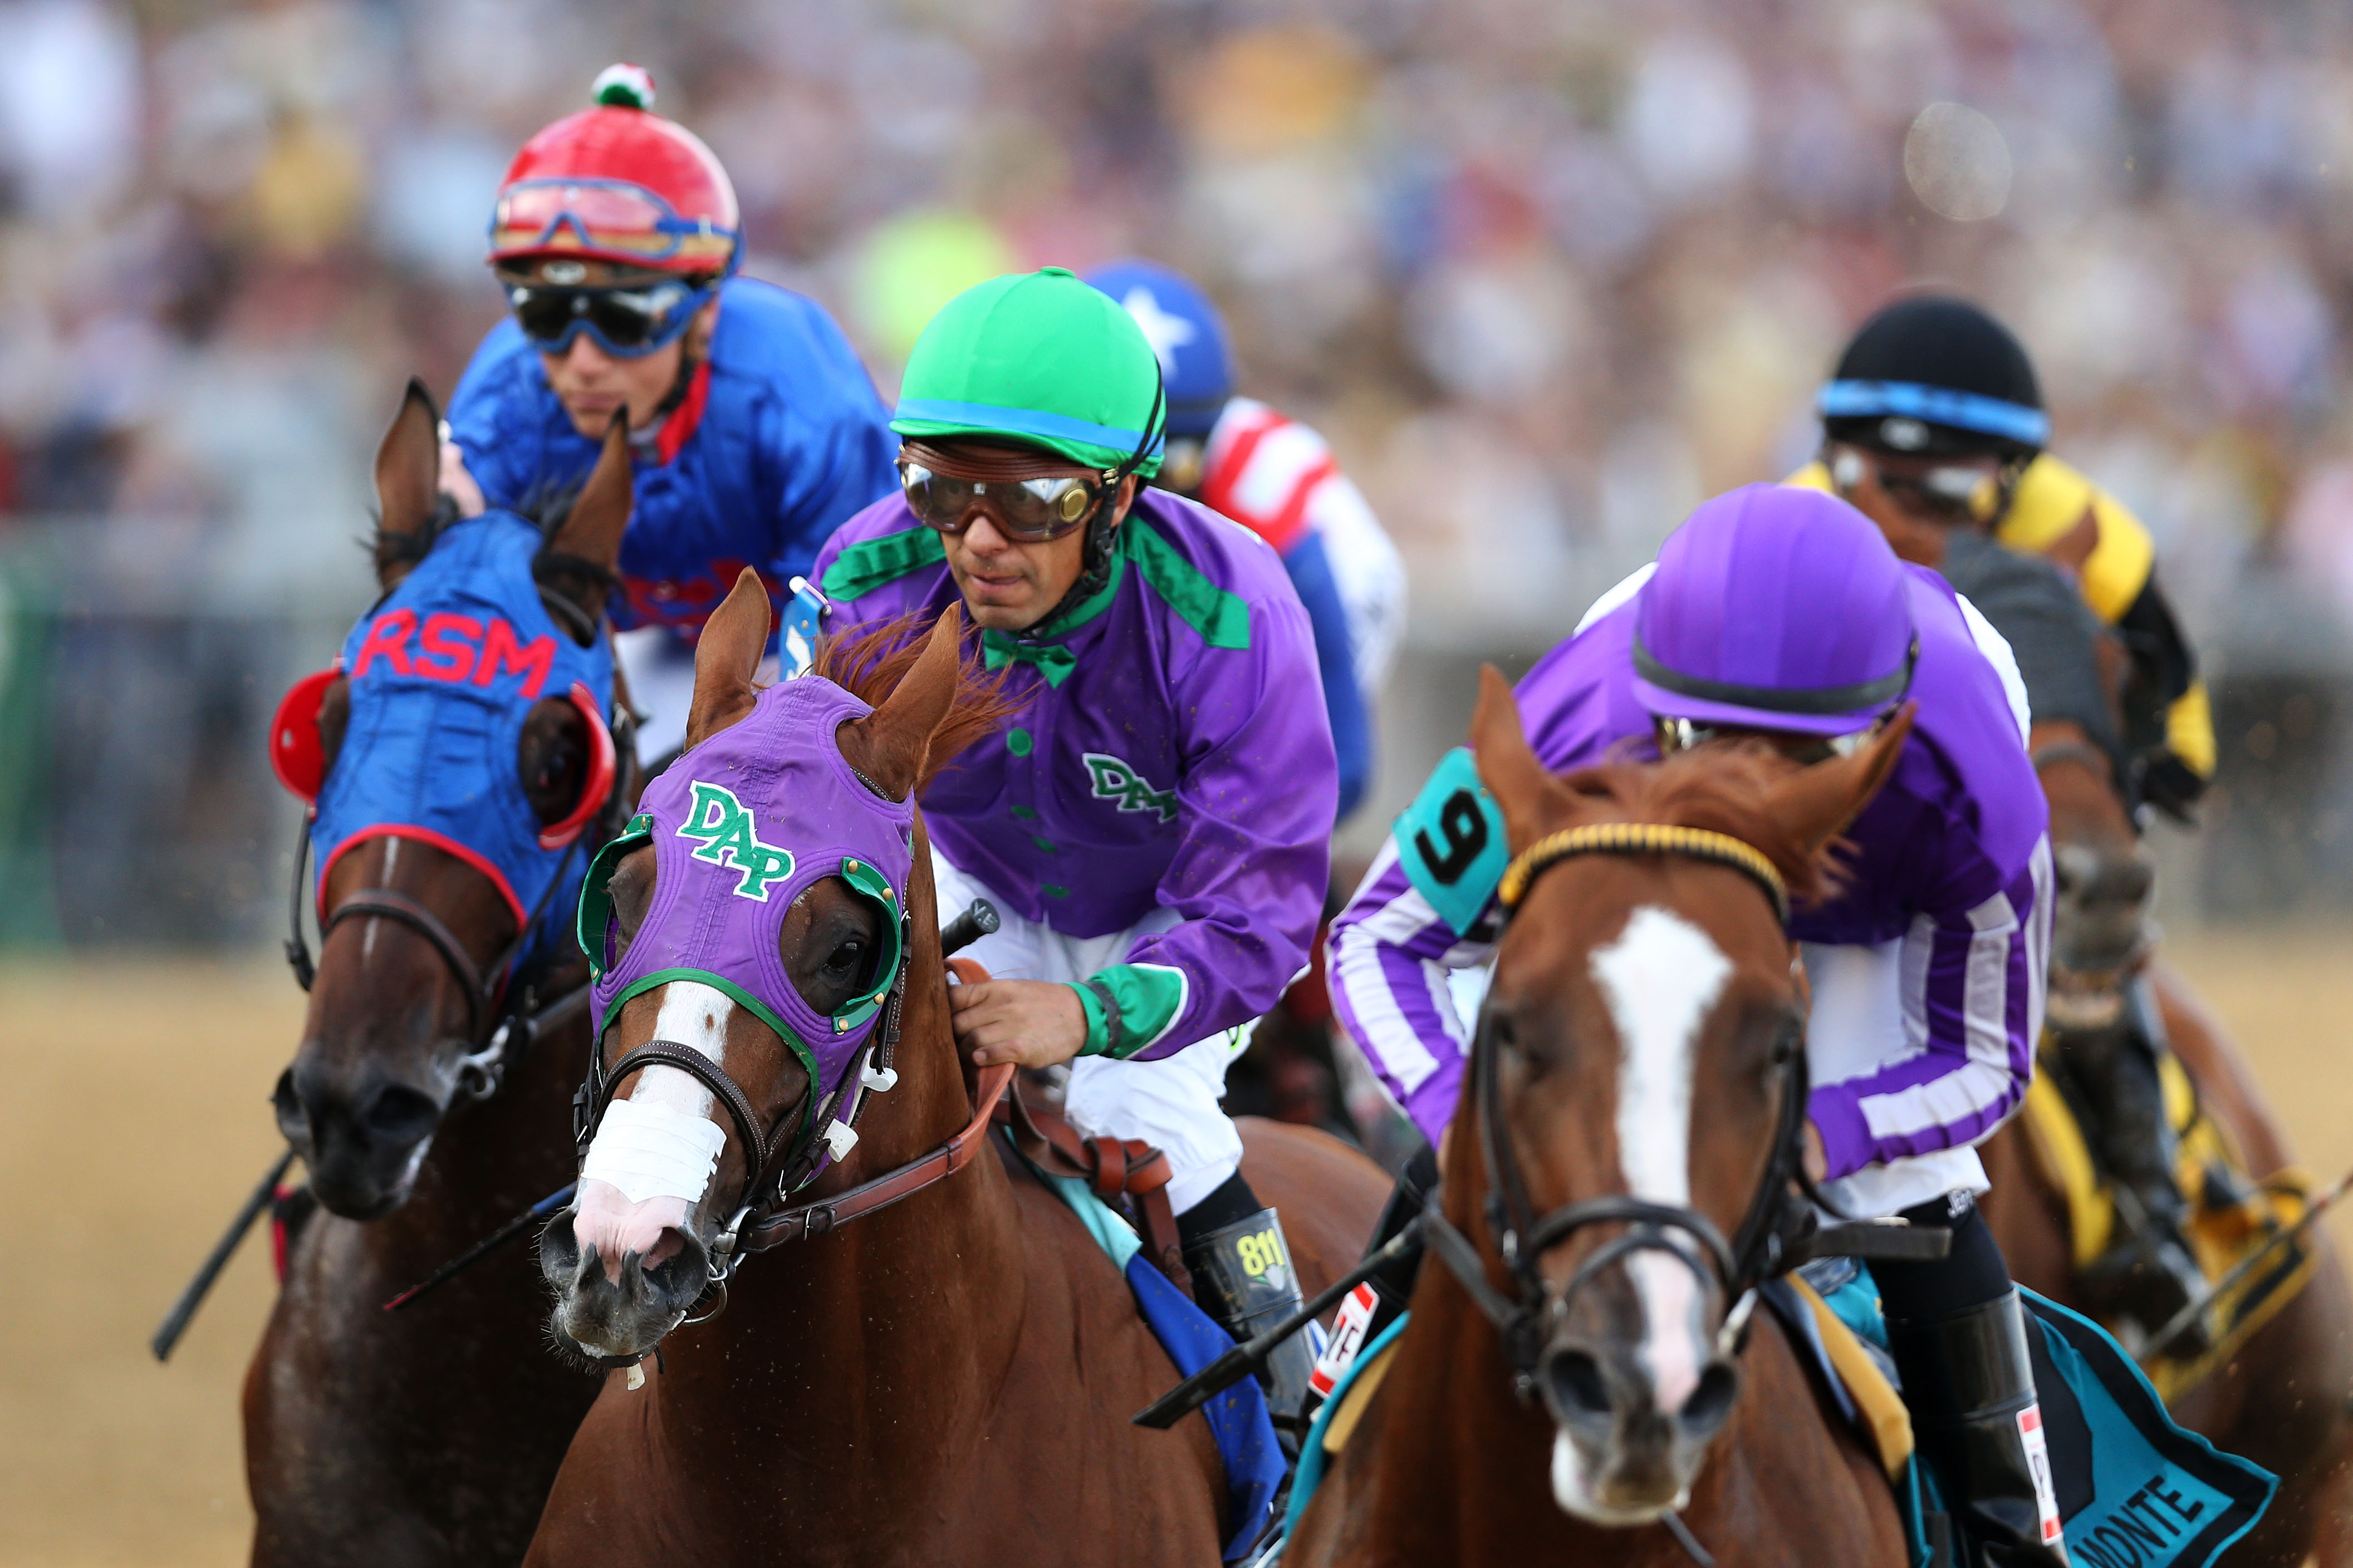 California Chrome heads toward victory in the Preakness States at Baltimore's Pimlico Race Course. Disputed nasal strip is visible just above Chrome's nostrils. (Matthew Stockman/Getty Images)